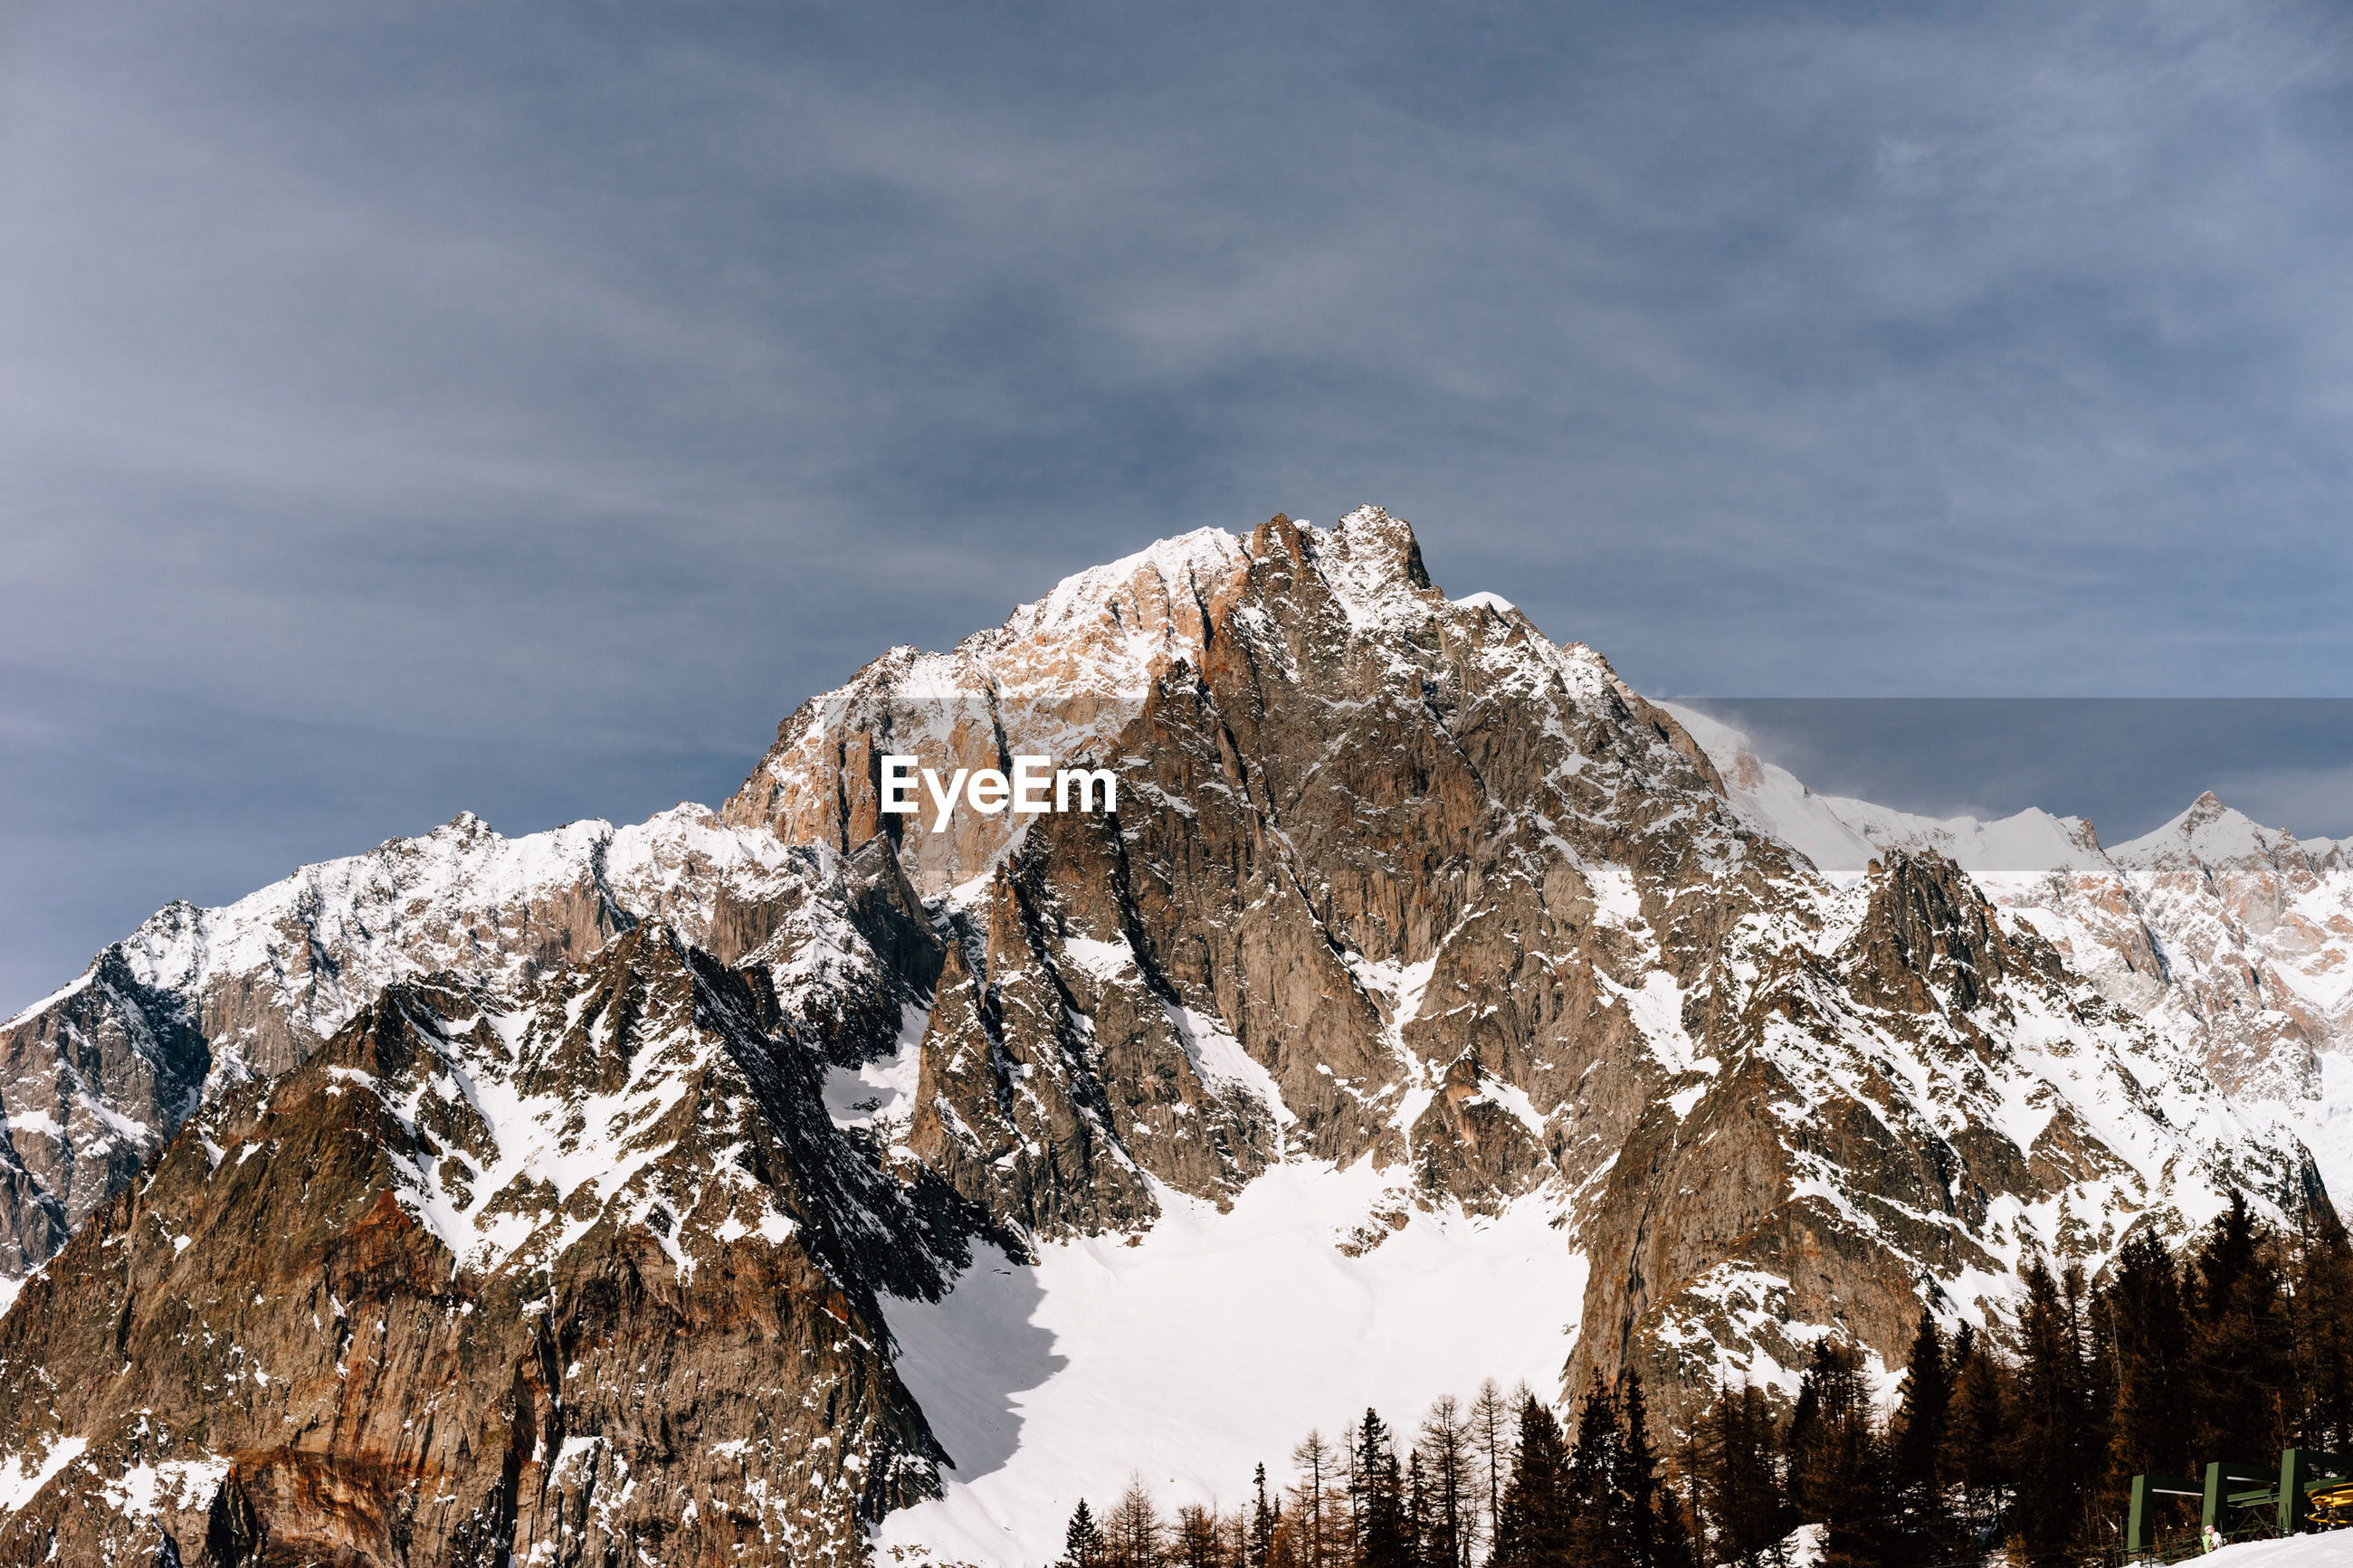 LOW ANGLE VIEW OF SNOWCAPPED MOUNTAIN AGAINST SKY DURING WINTER